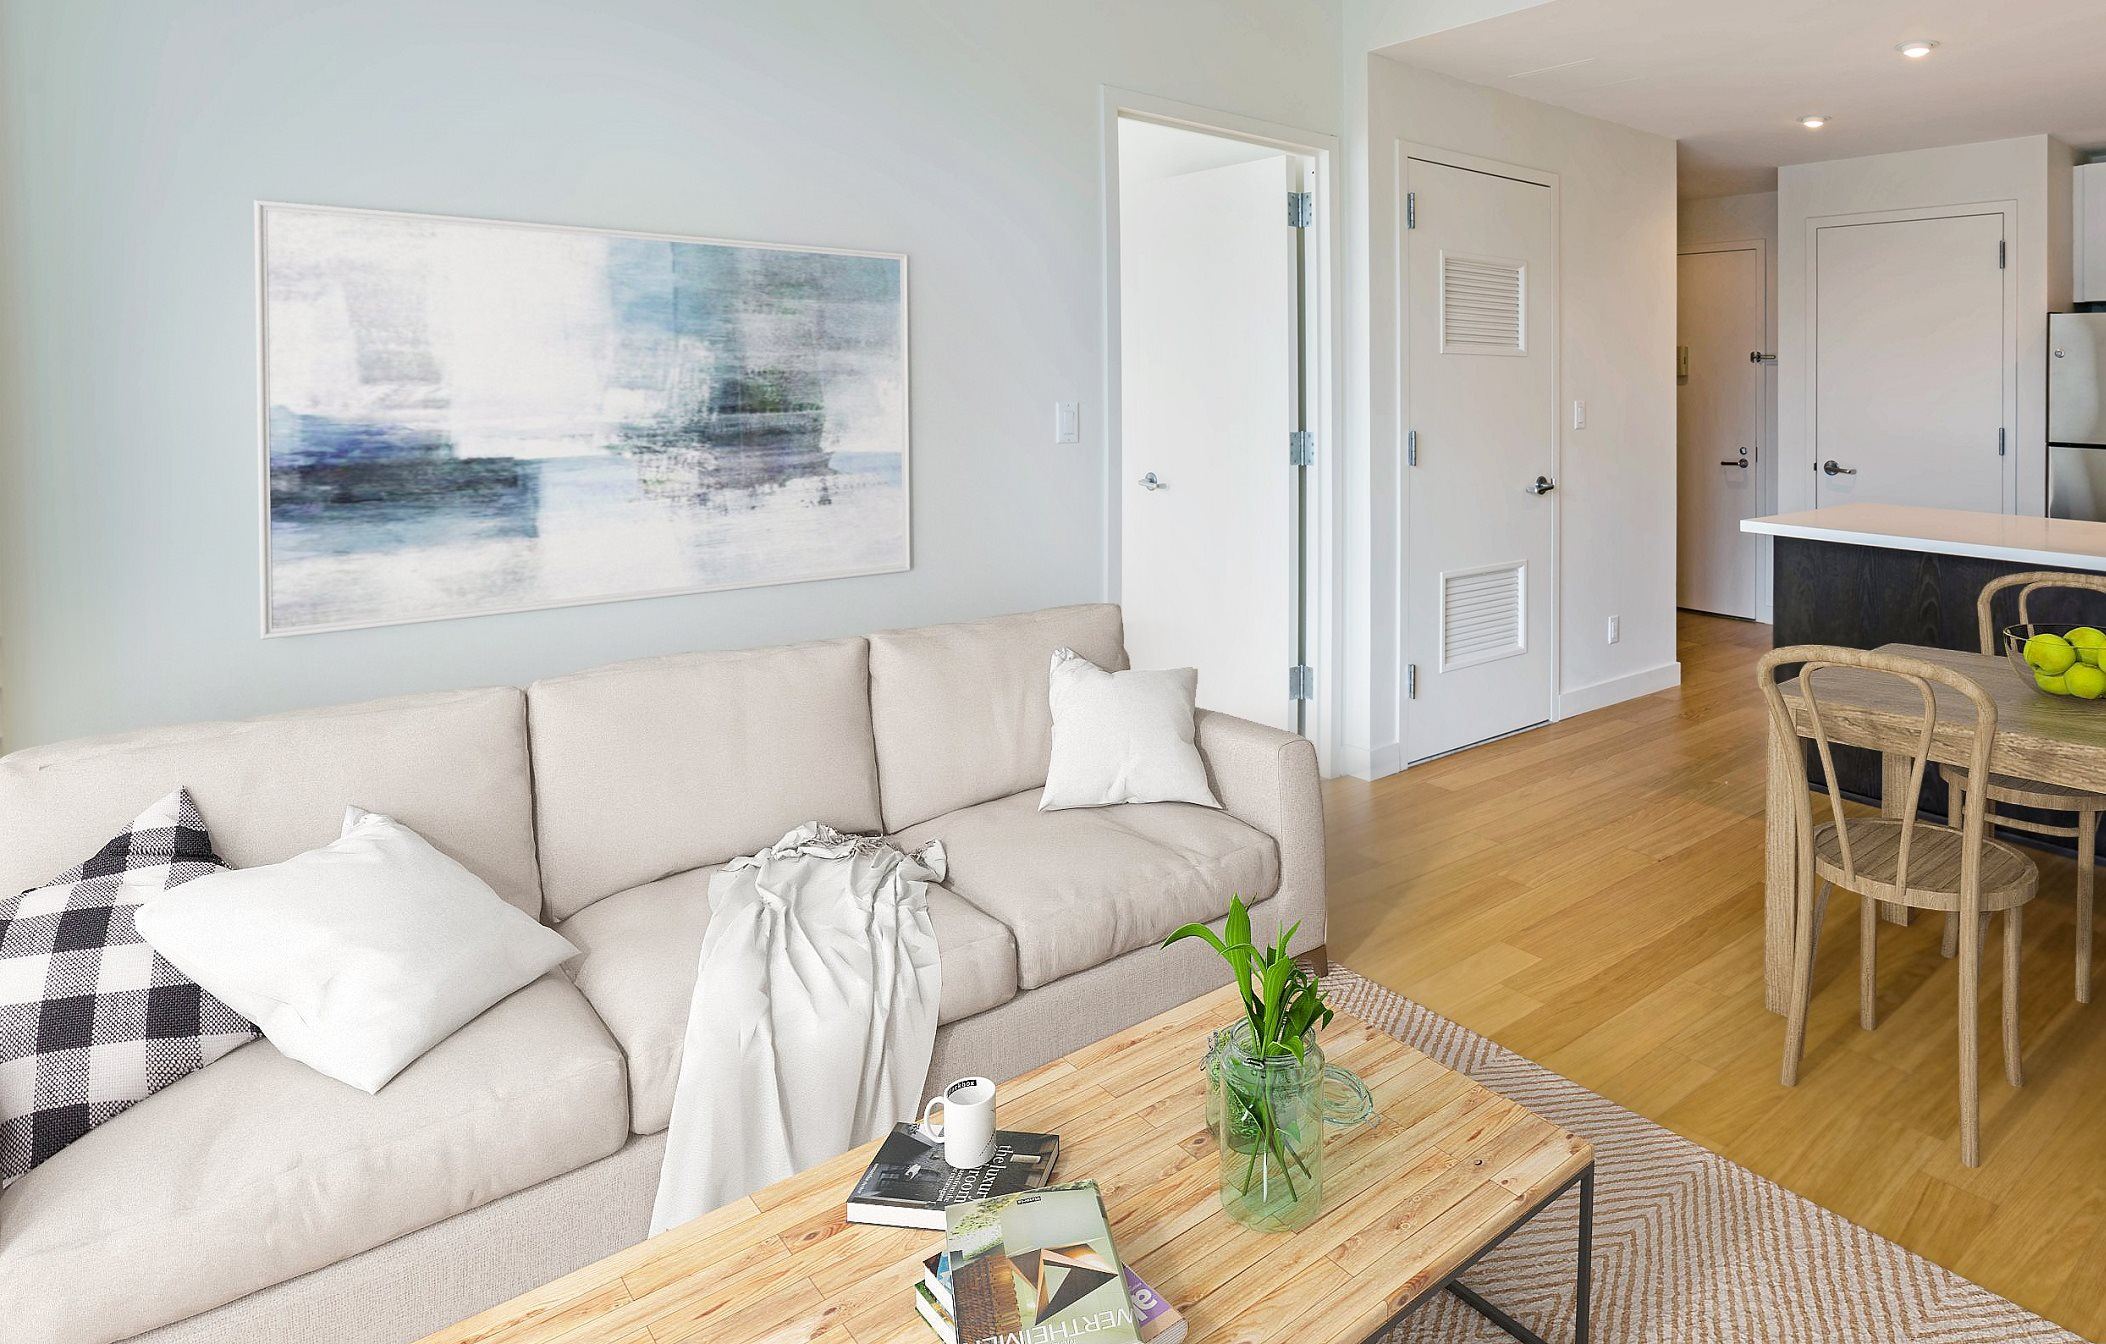 568 Union Ave | Apartments For Rent in Brooklyn, NY